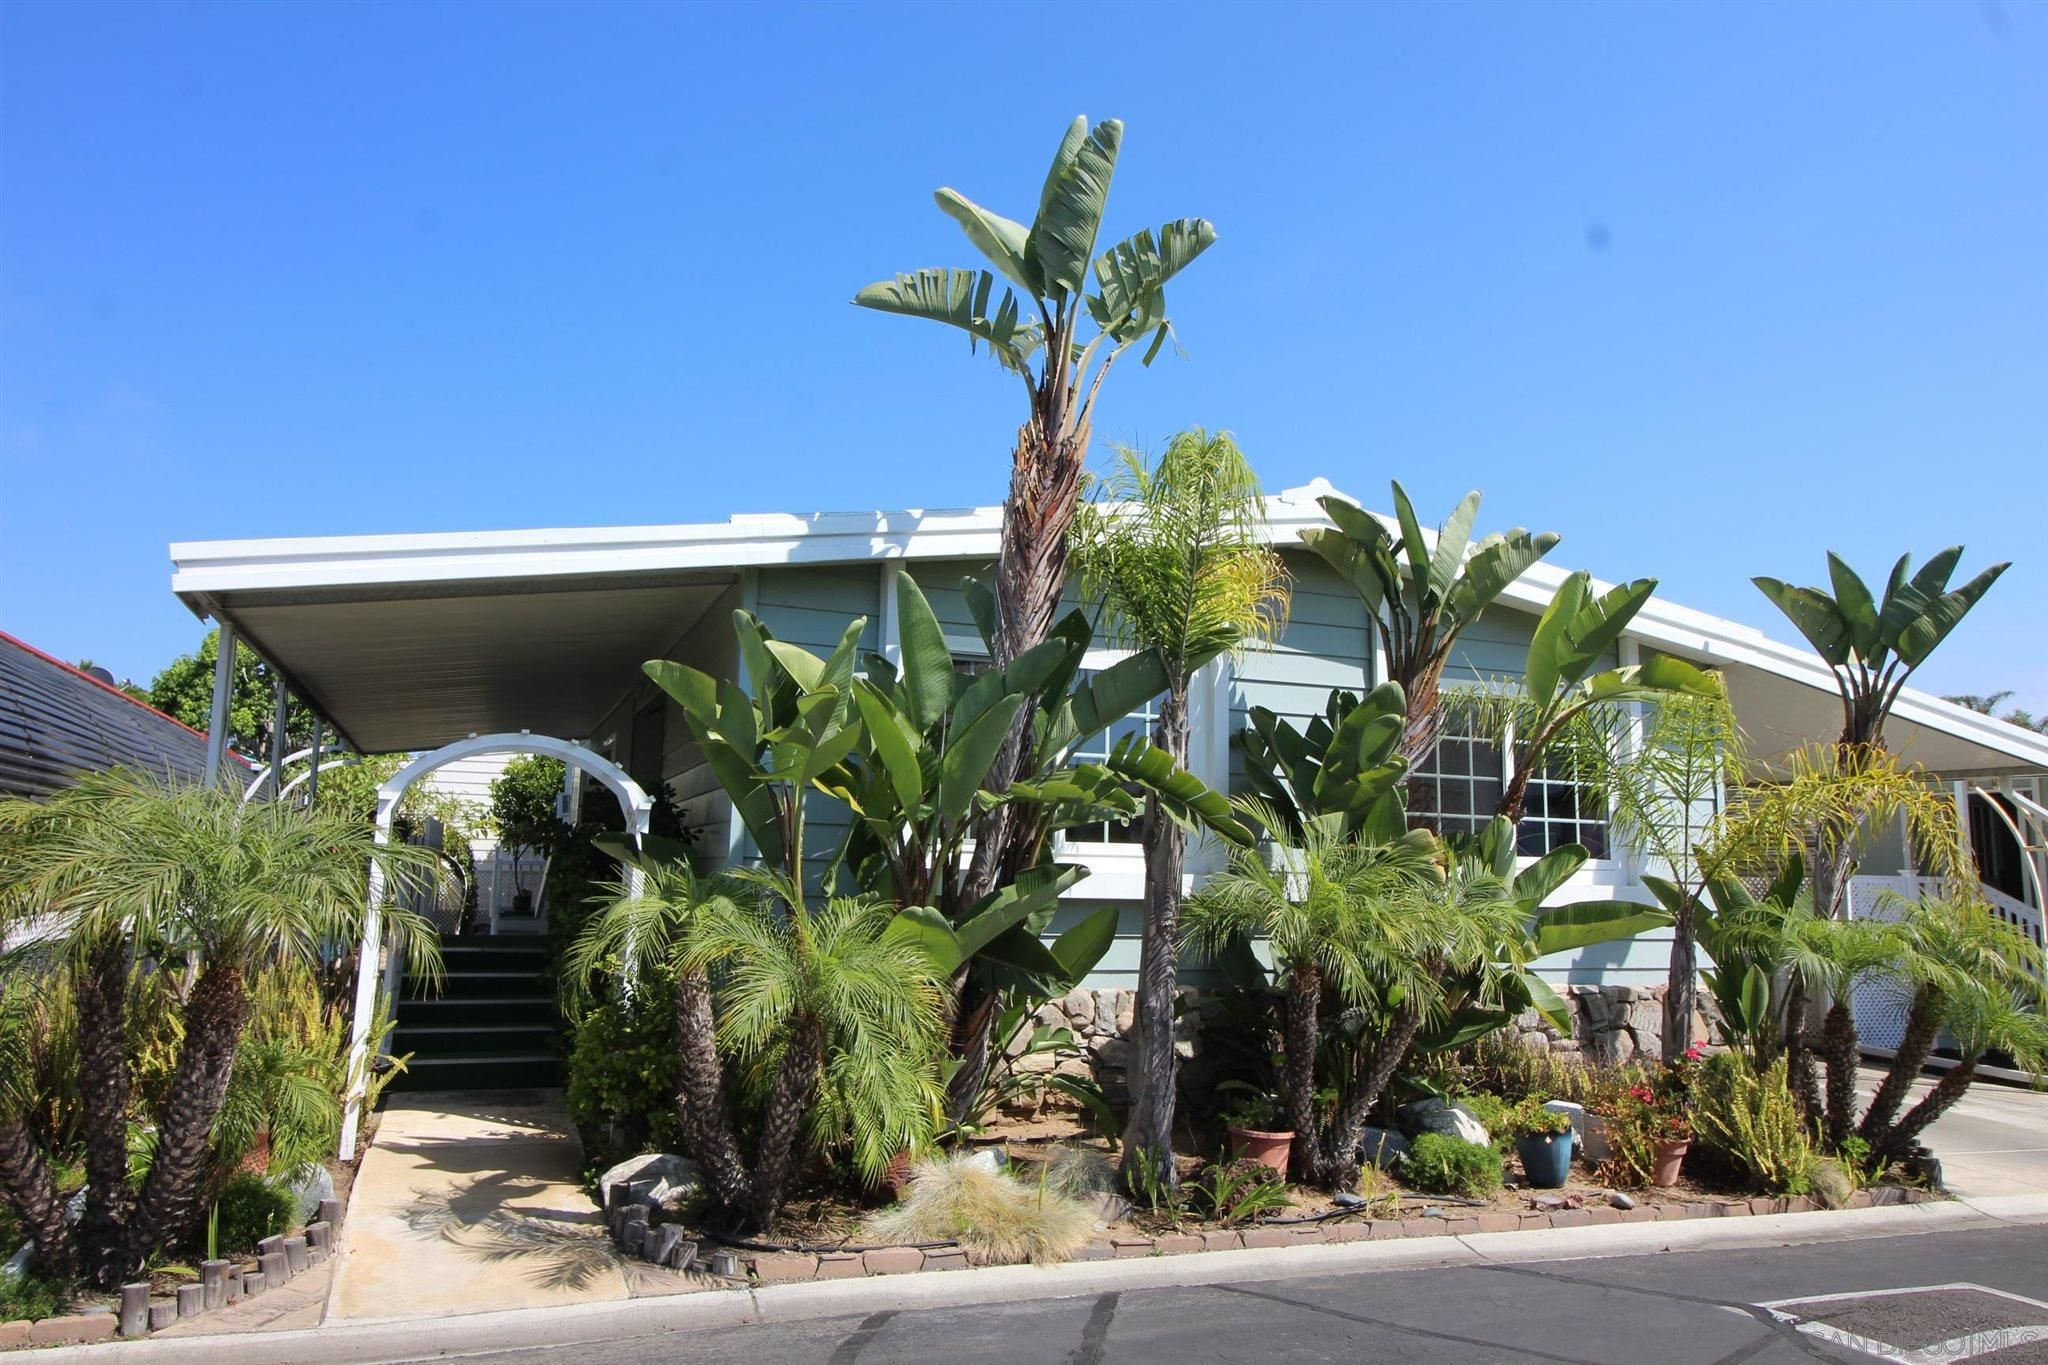 Main Photo: CARLSBAD WEST Manufactured Home for sale : 2 bedrooms : 7220 San Lucas St #188 in Carlsbad